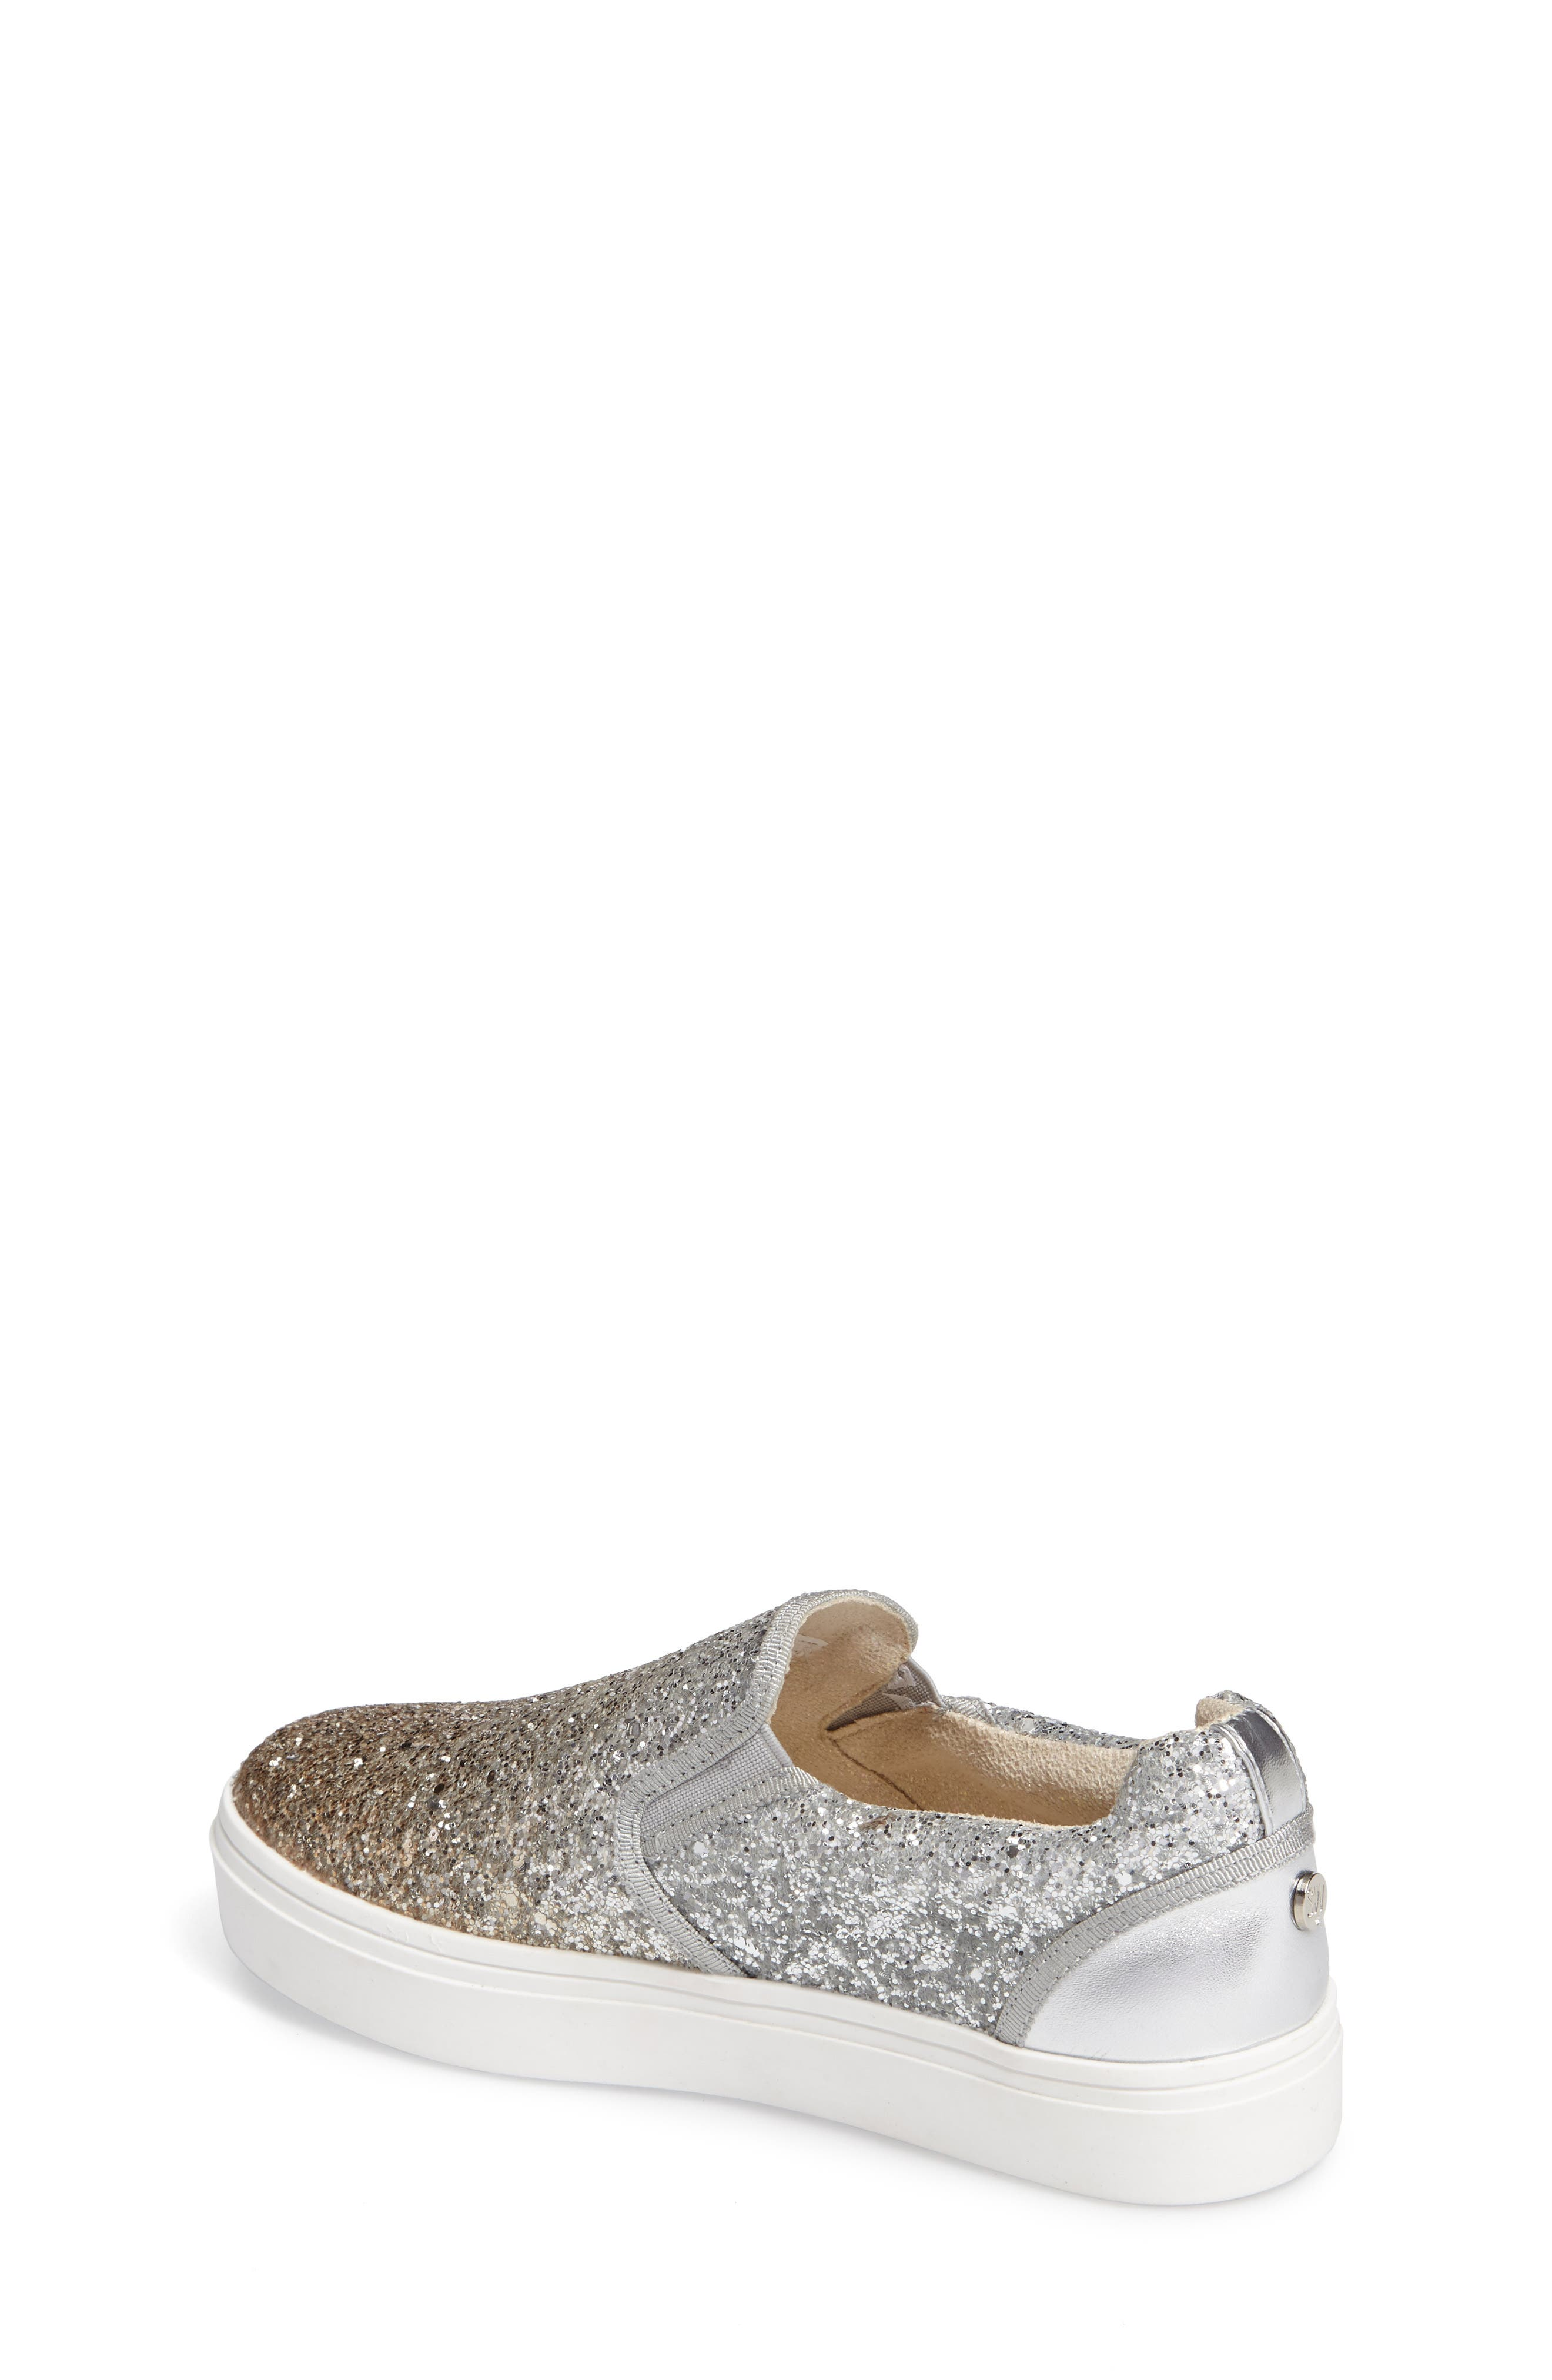 Double Marcia Glitter Platform Sneaker,                             Alternate thumbnail 2, color,                             Silver/ Gold